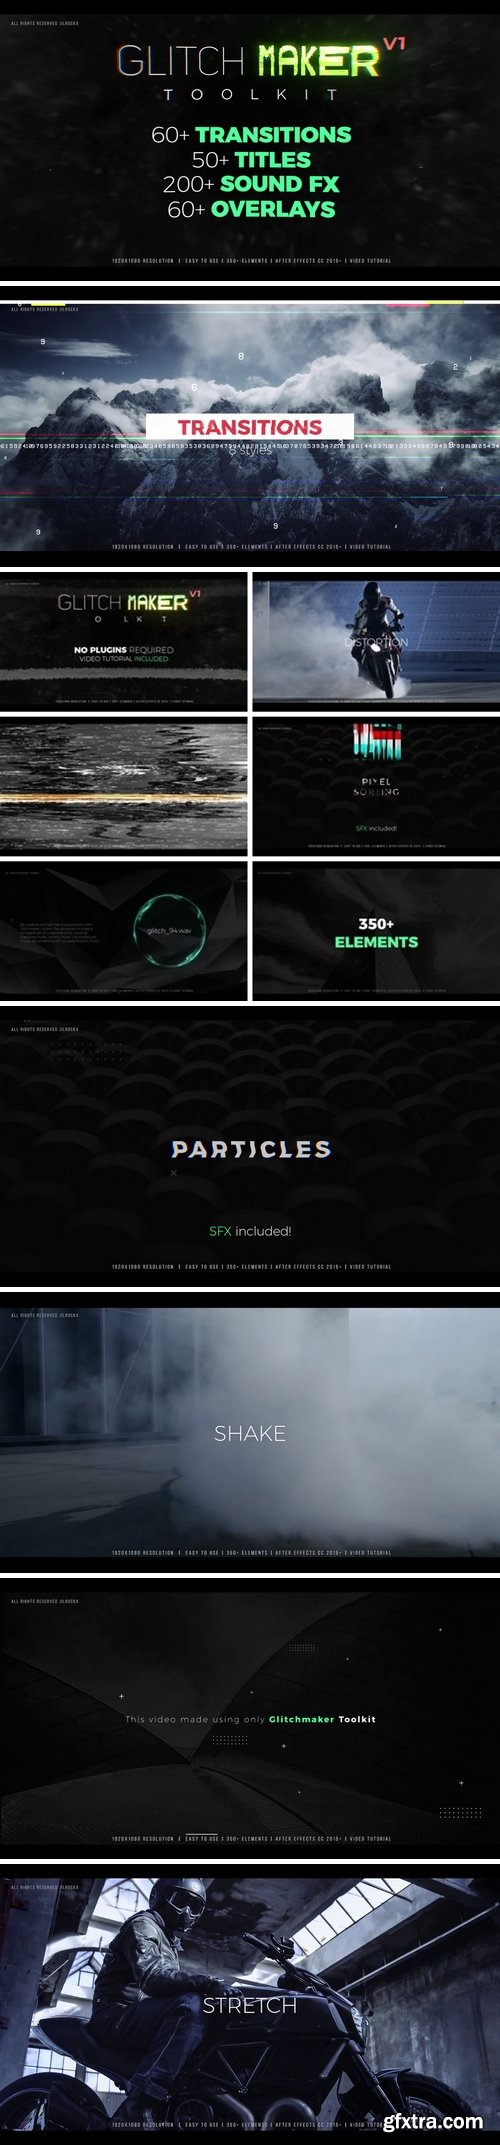 MotionArray - GlitchMaker Toolkit: 350+ Elements After Effects Templates 66116